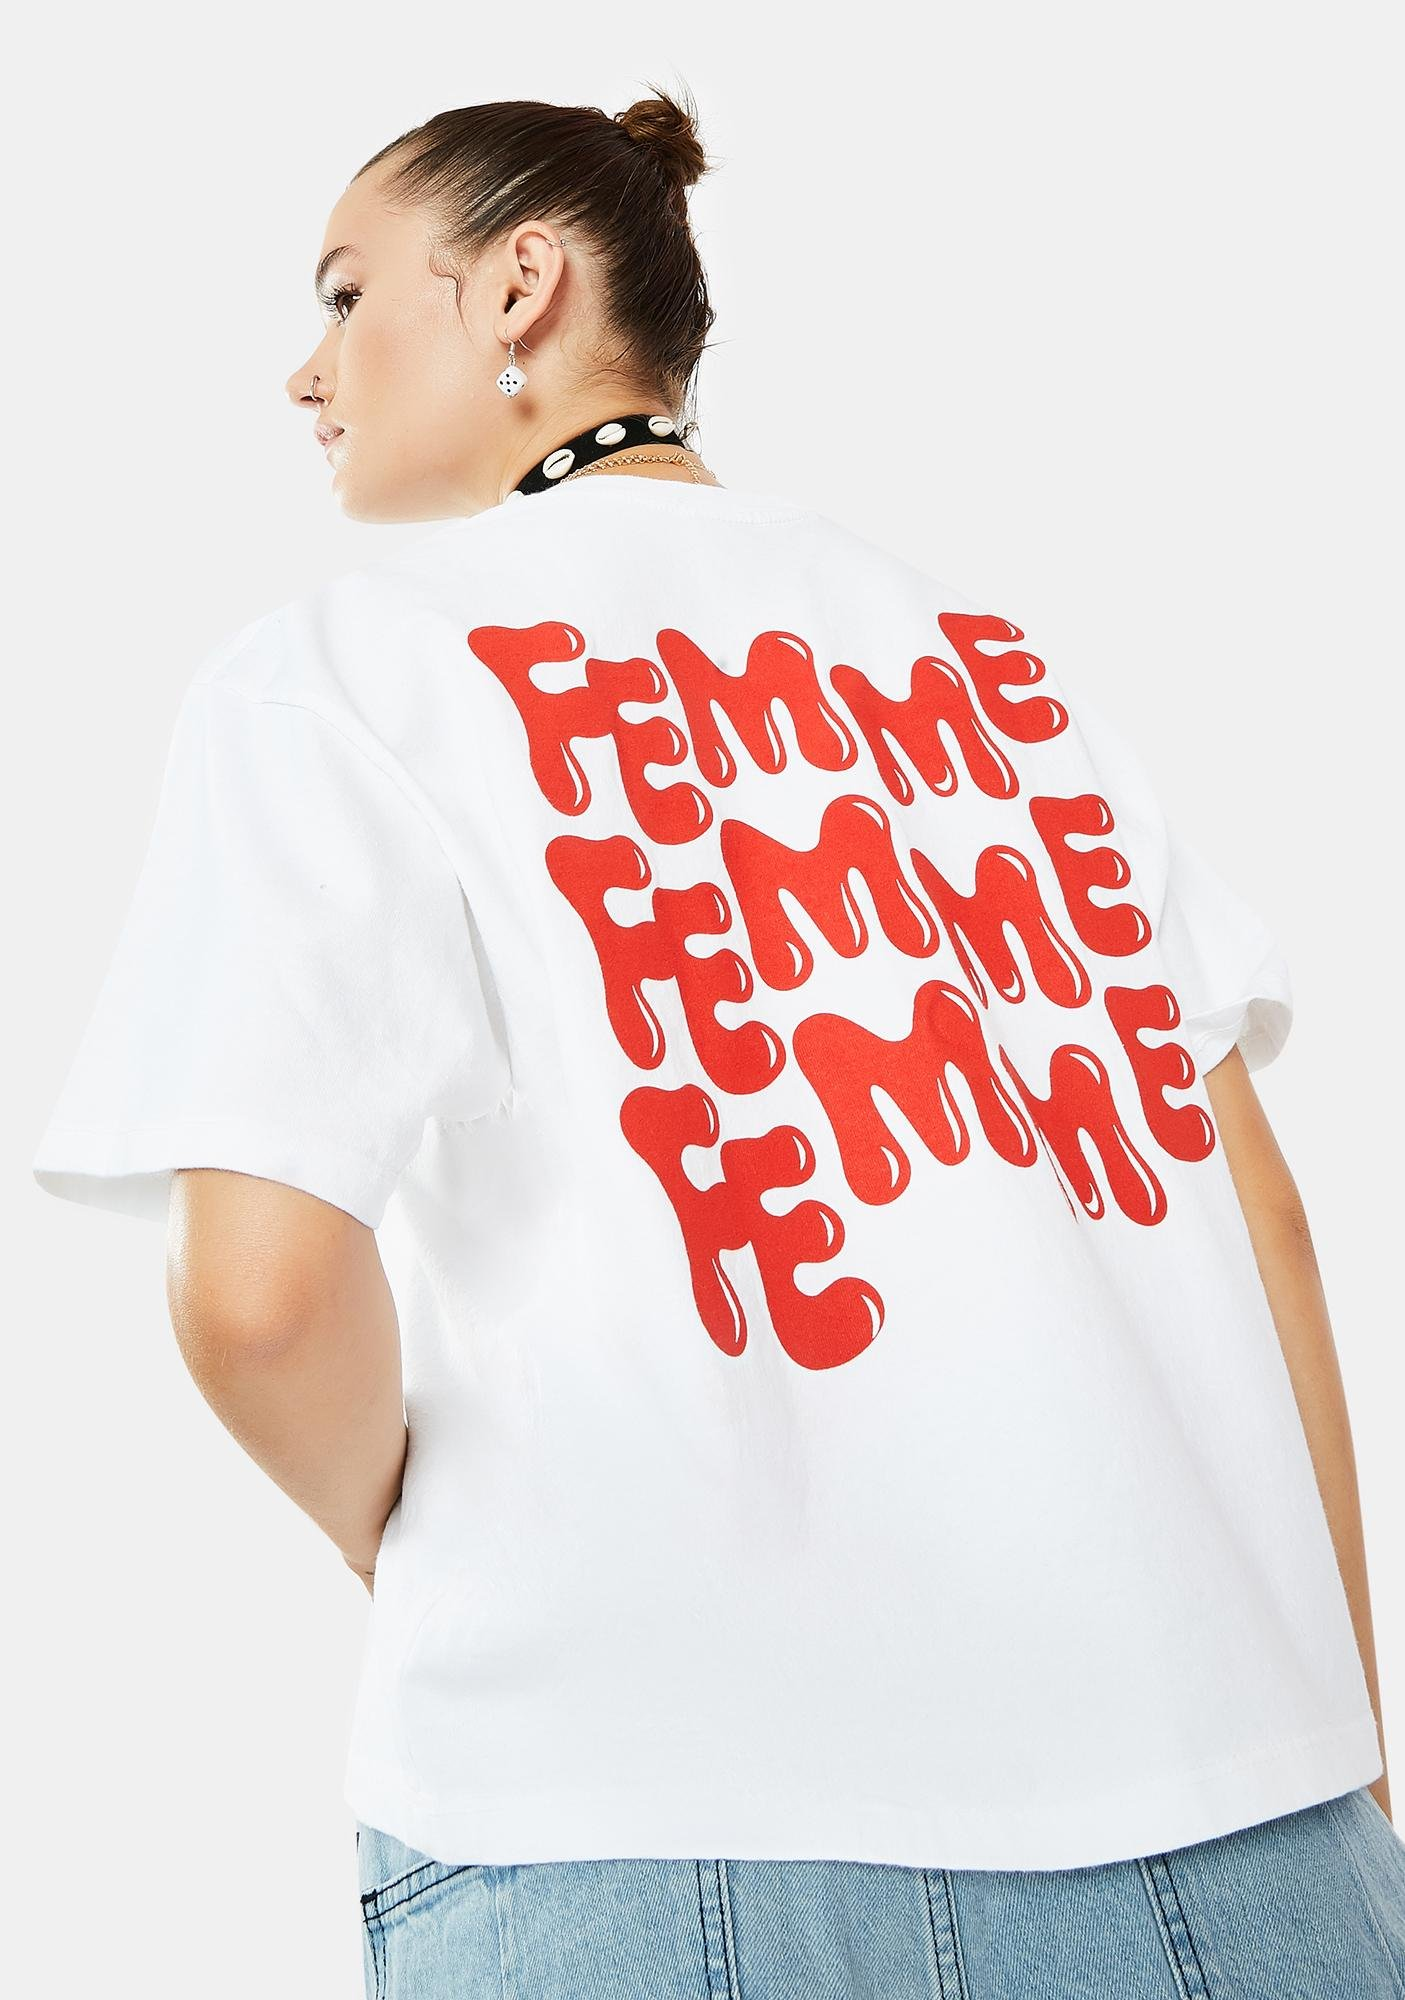 Obey Femme Graphic Tee